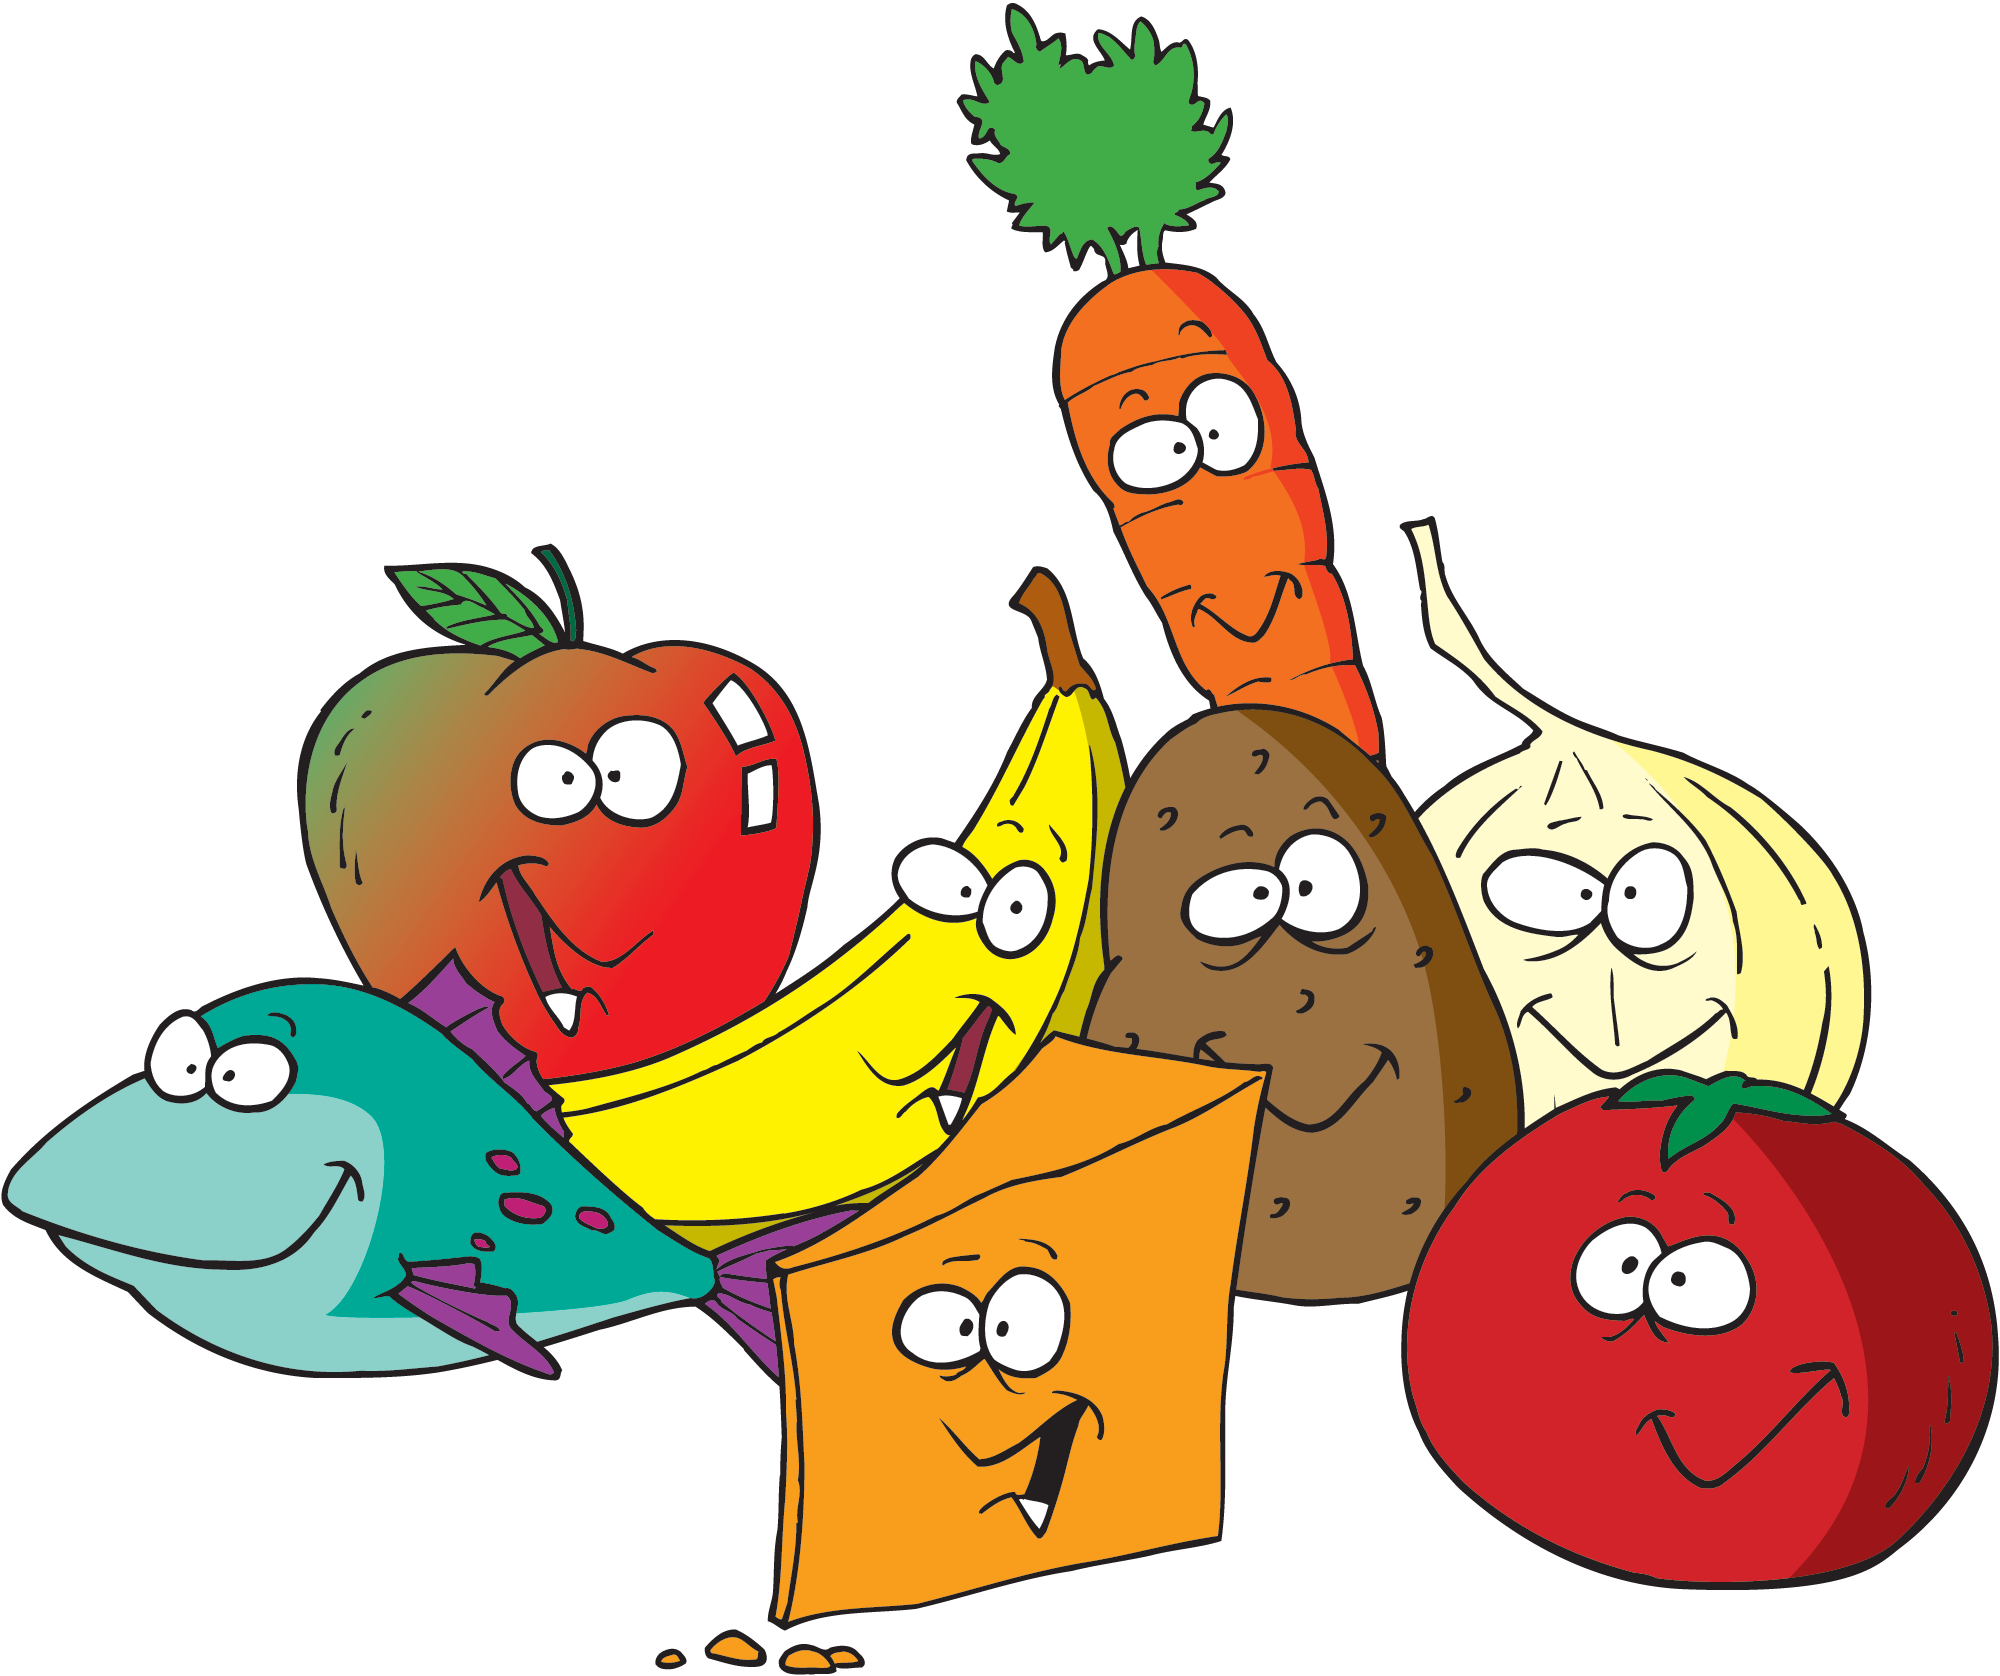 Exercise clipart food. Healthy great image by